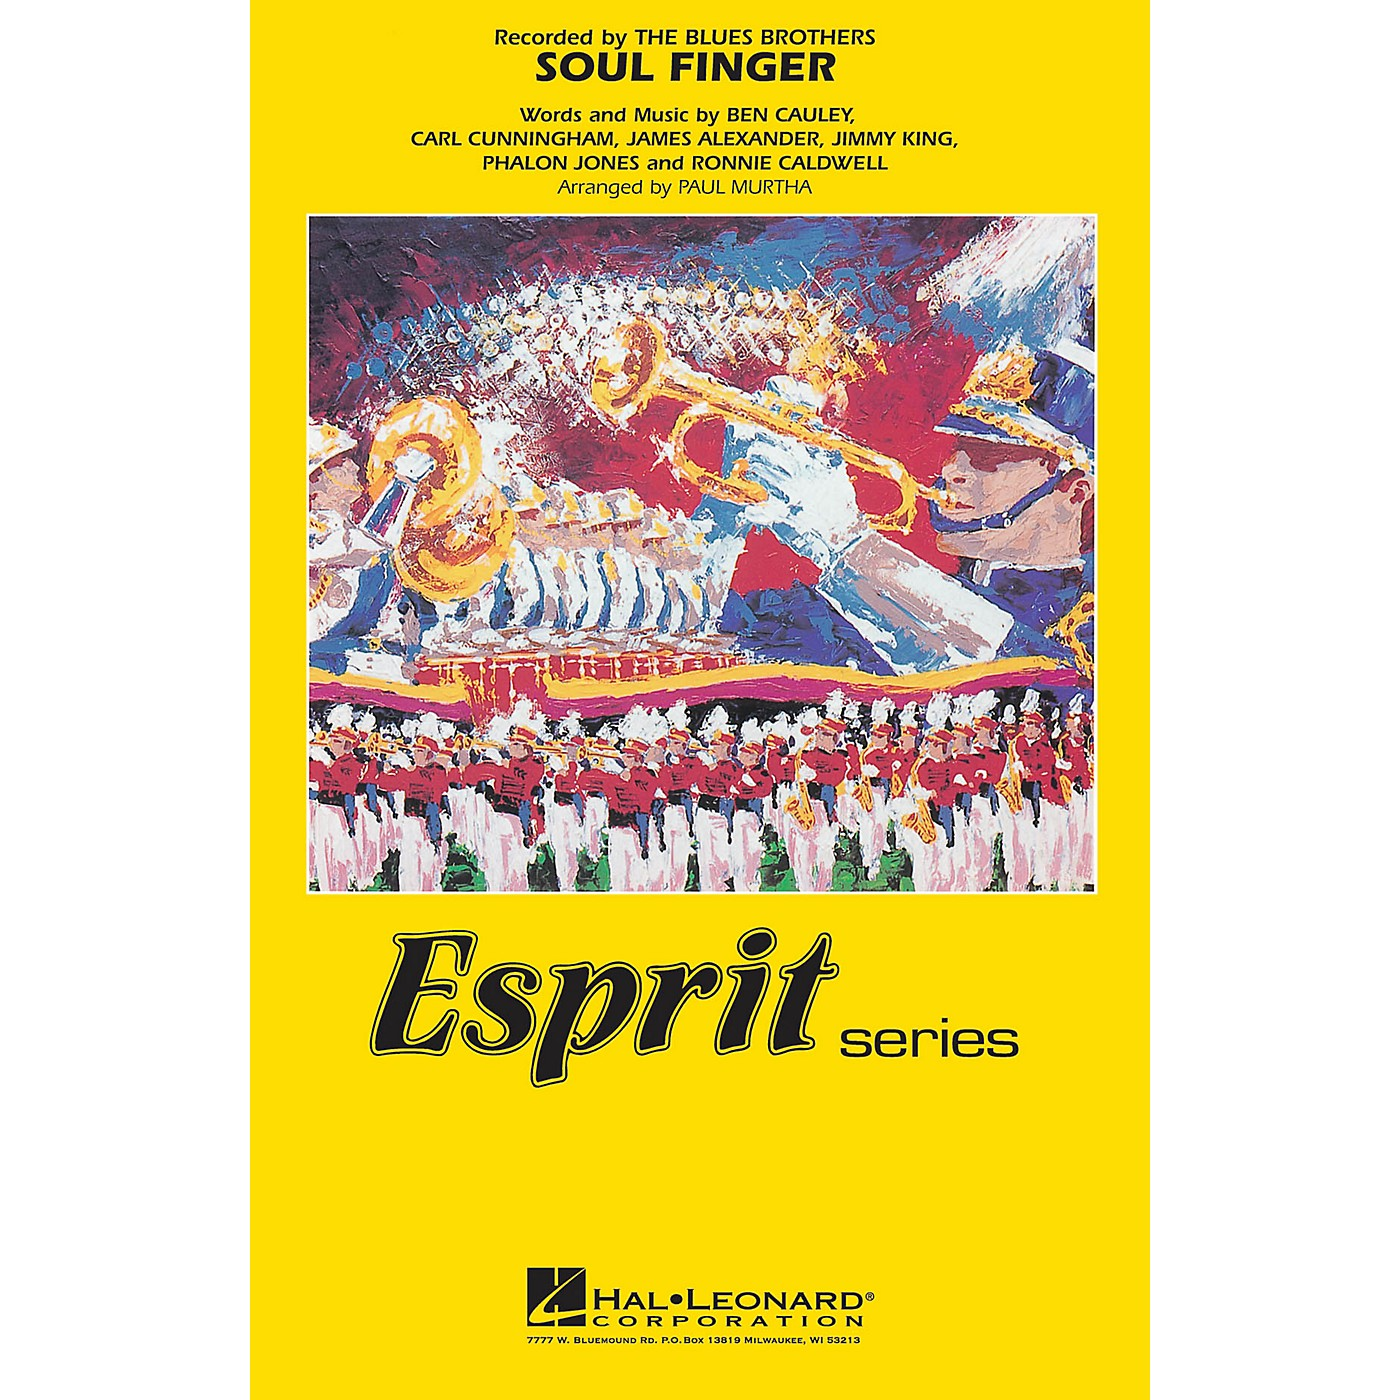 Hal Leonard Soul Finger (Recorded by The Blues Brothers) Marching Band Level 3 Arranged by Paul Murtha thumbnail